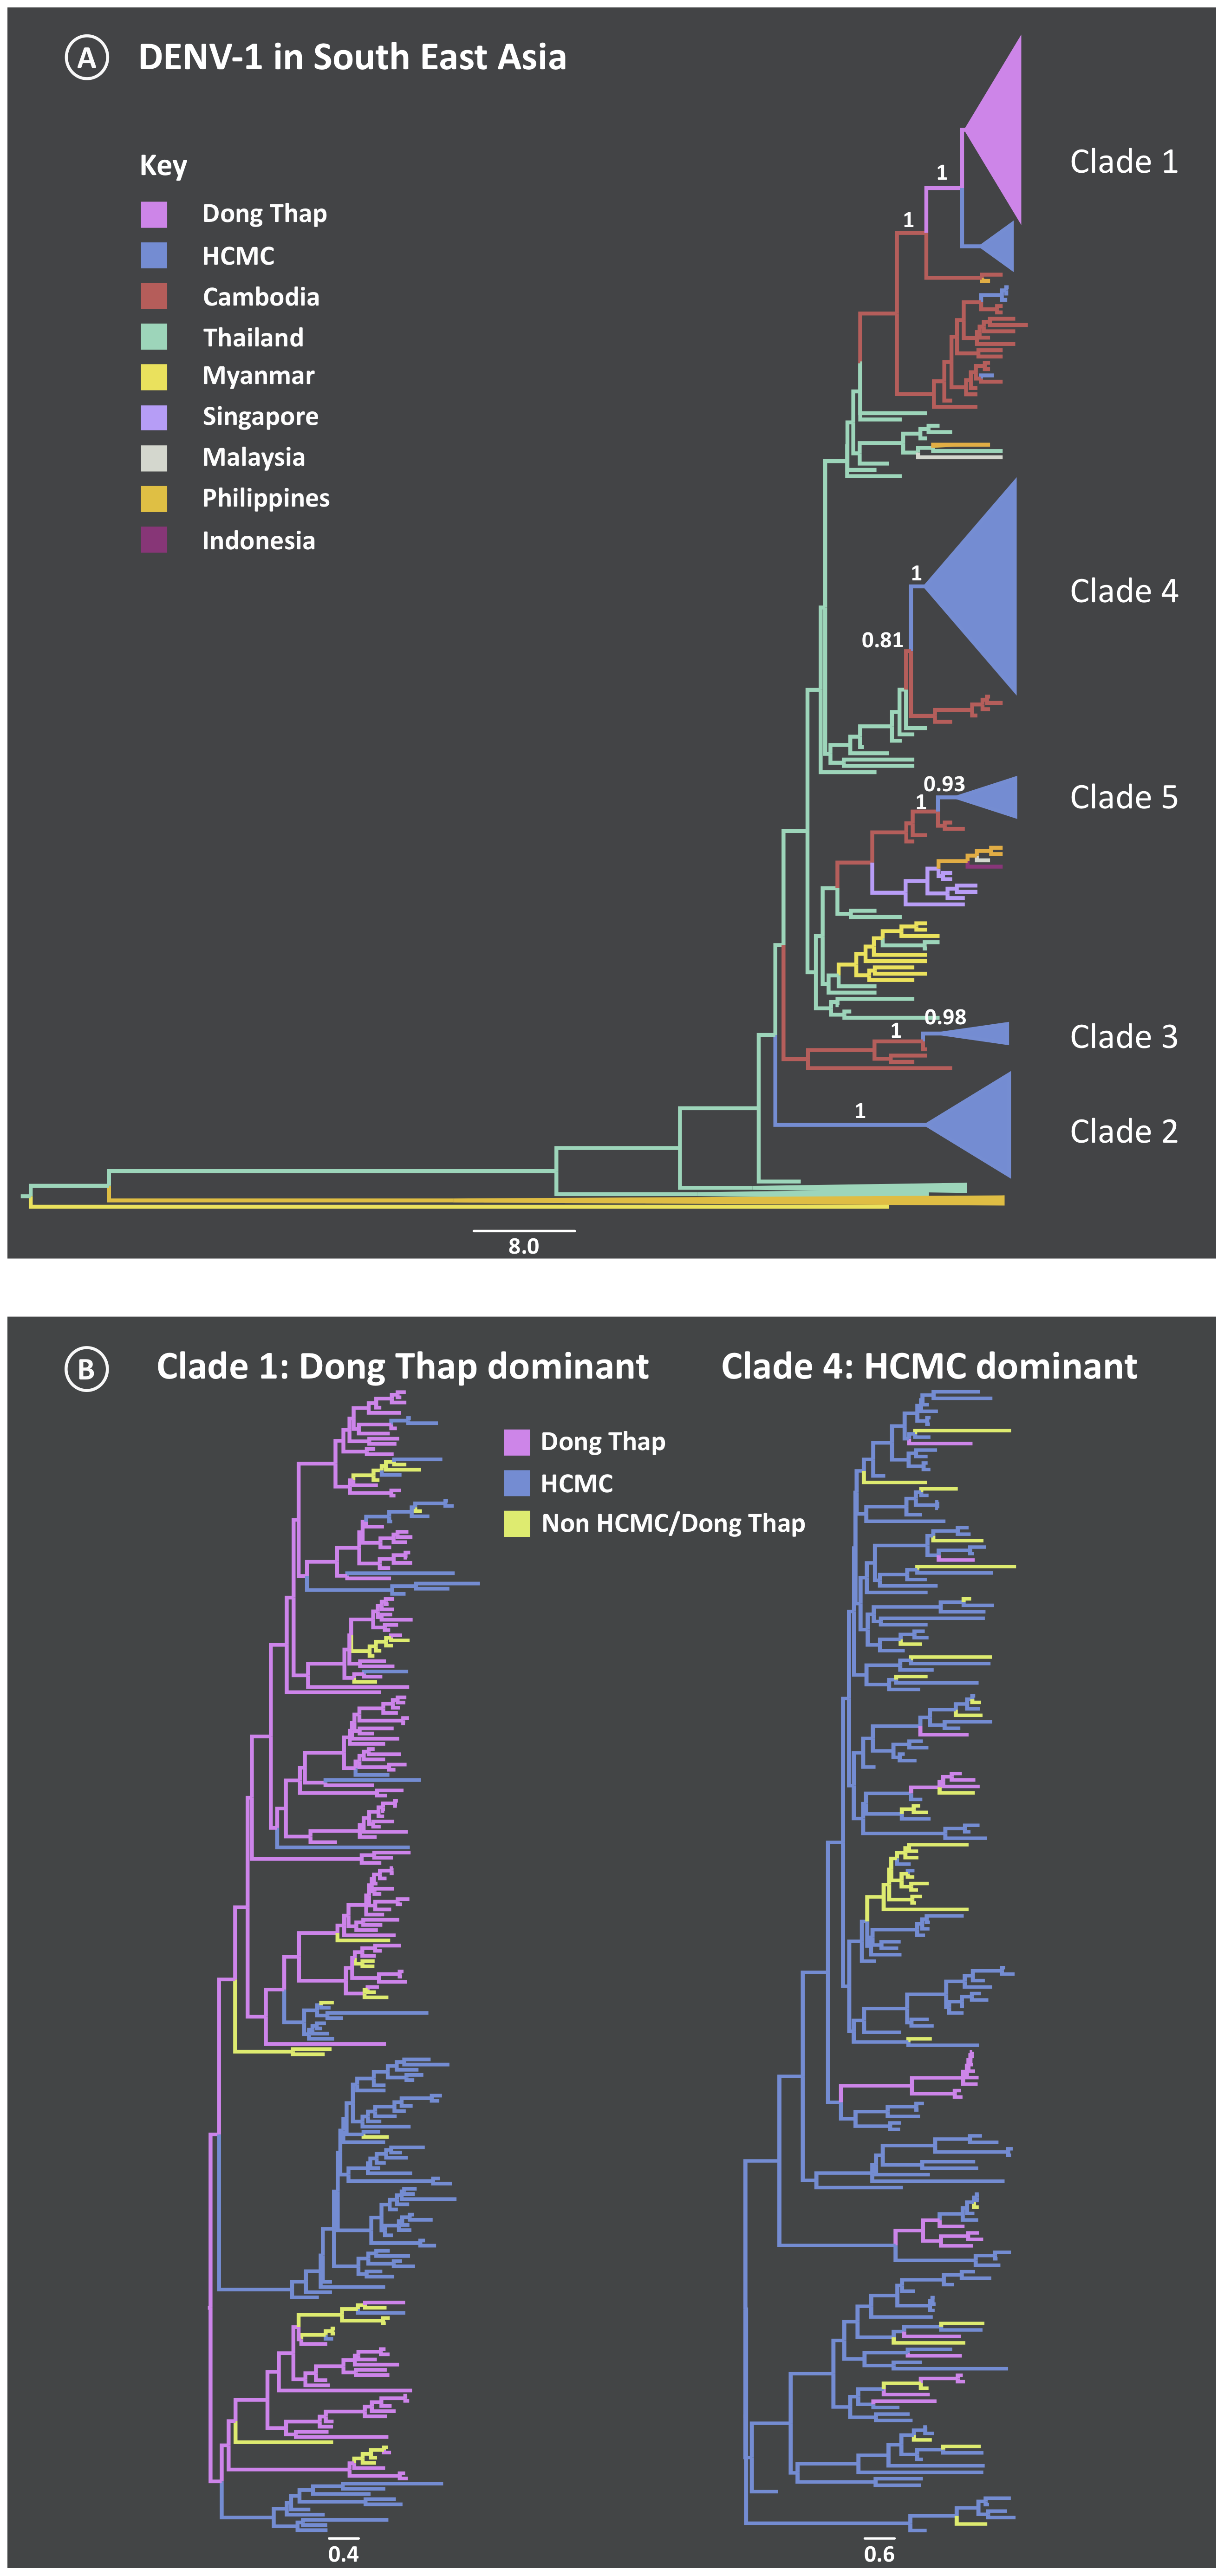 Maximum Clade Credibility (MCC) trees from the discrete phylogeography analysis of DENV-1.